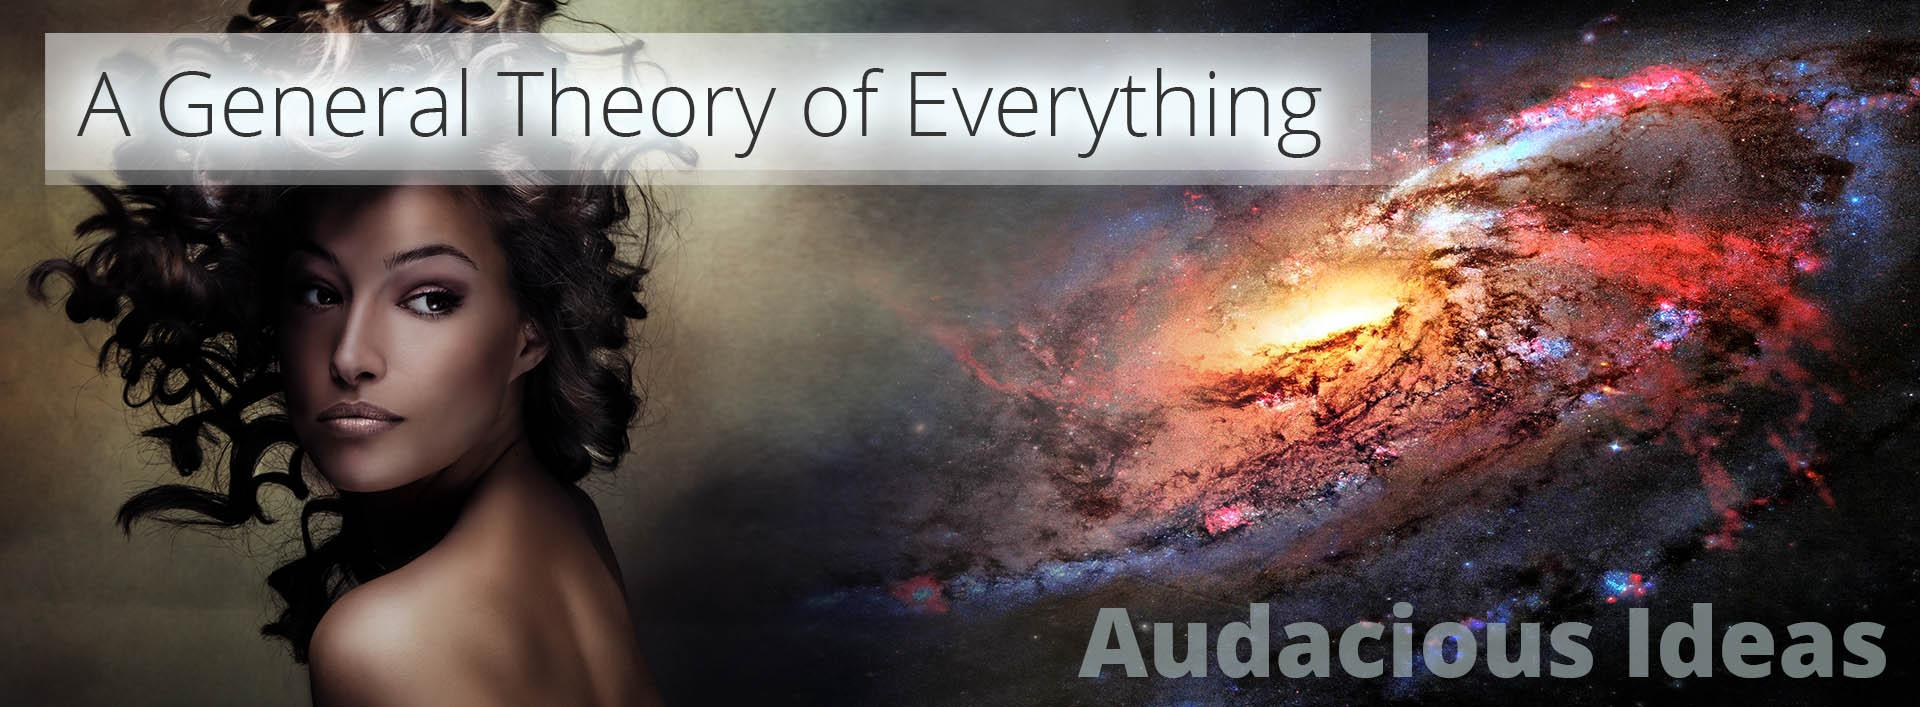 A General Theory of Everything - Audacious Ideas